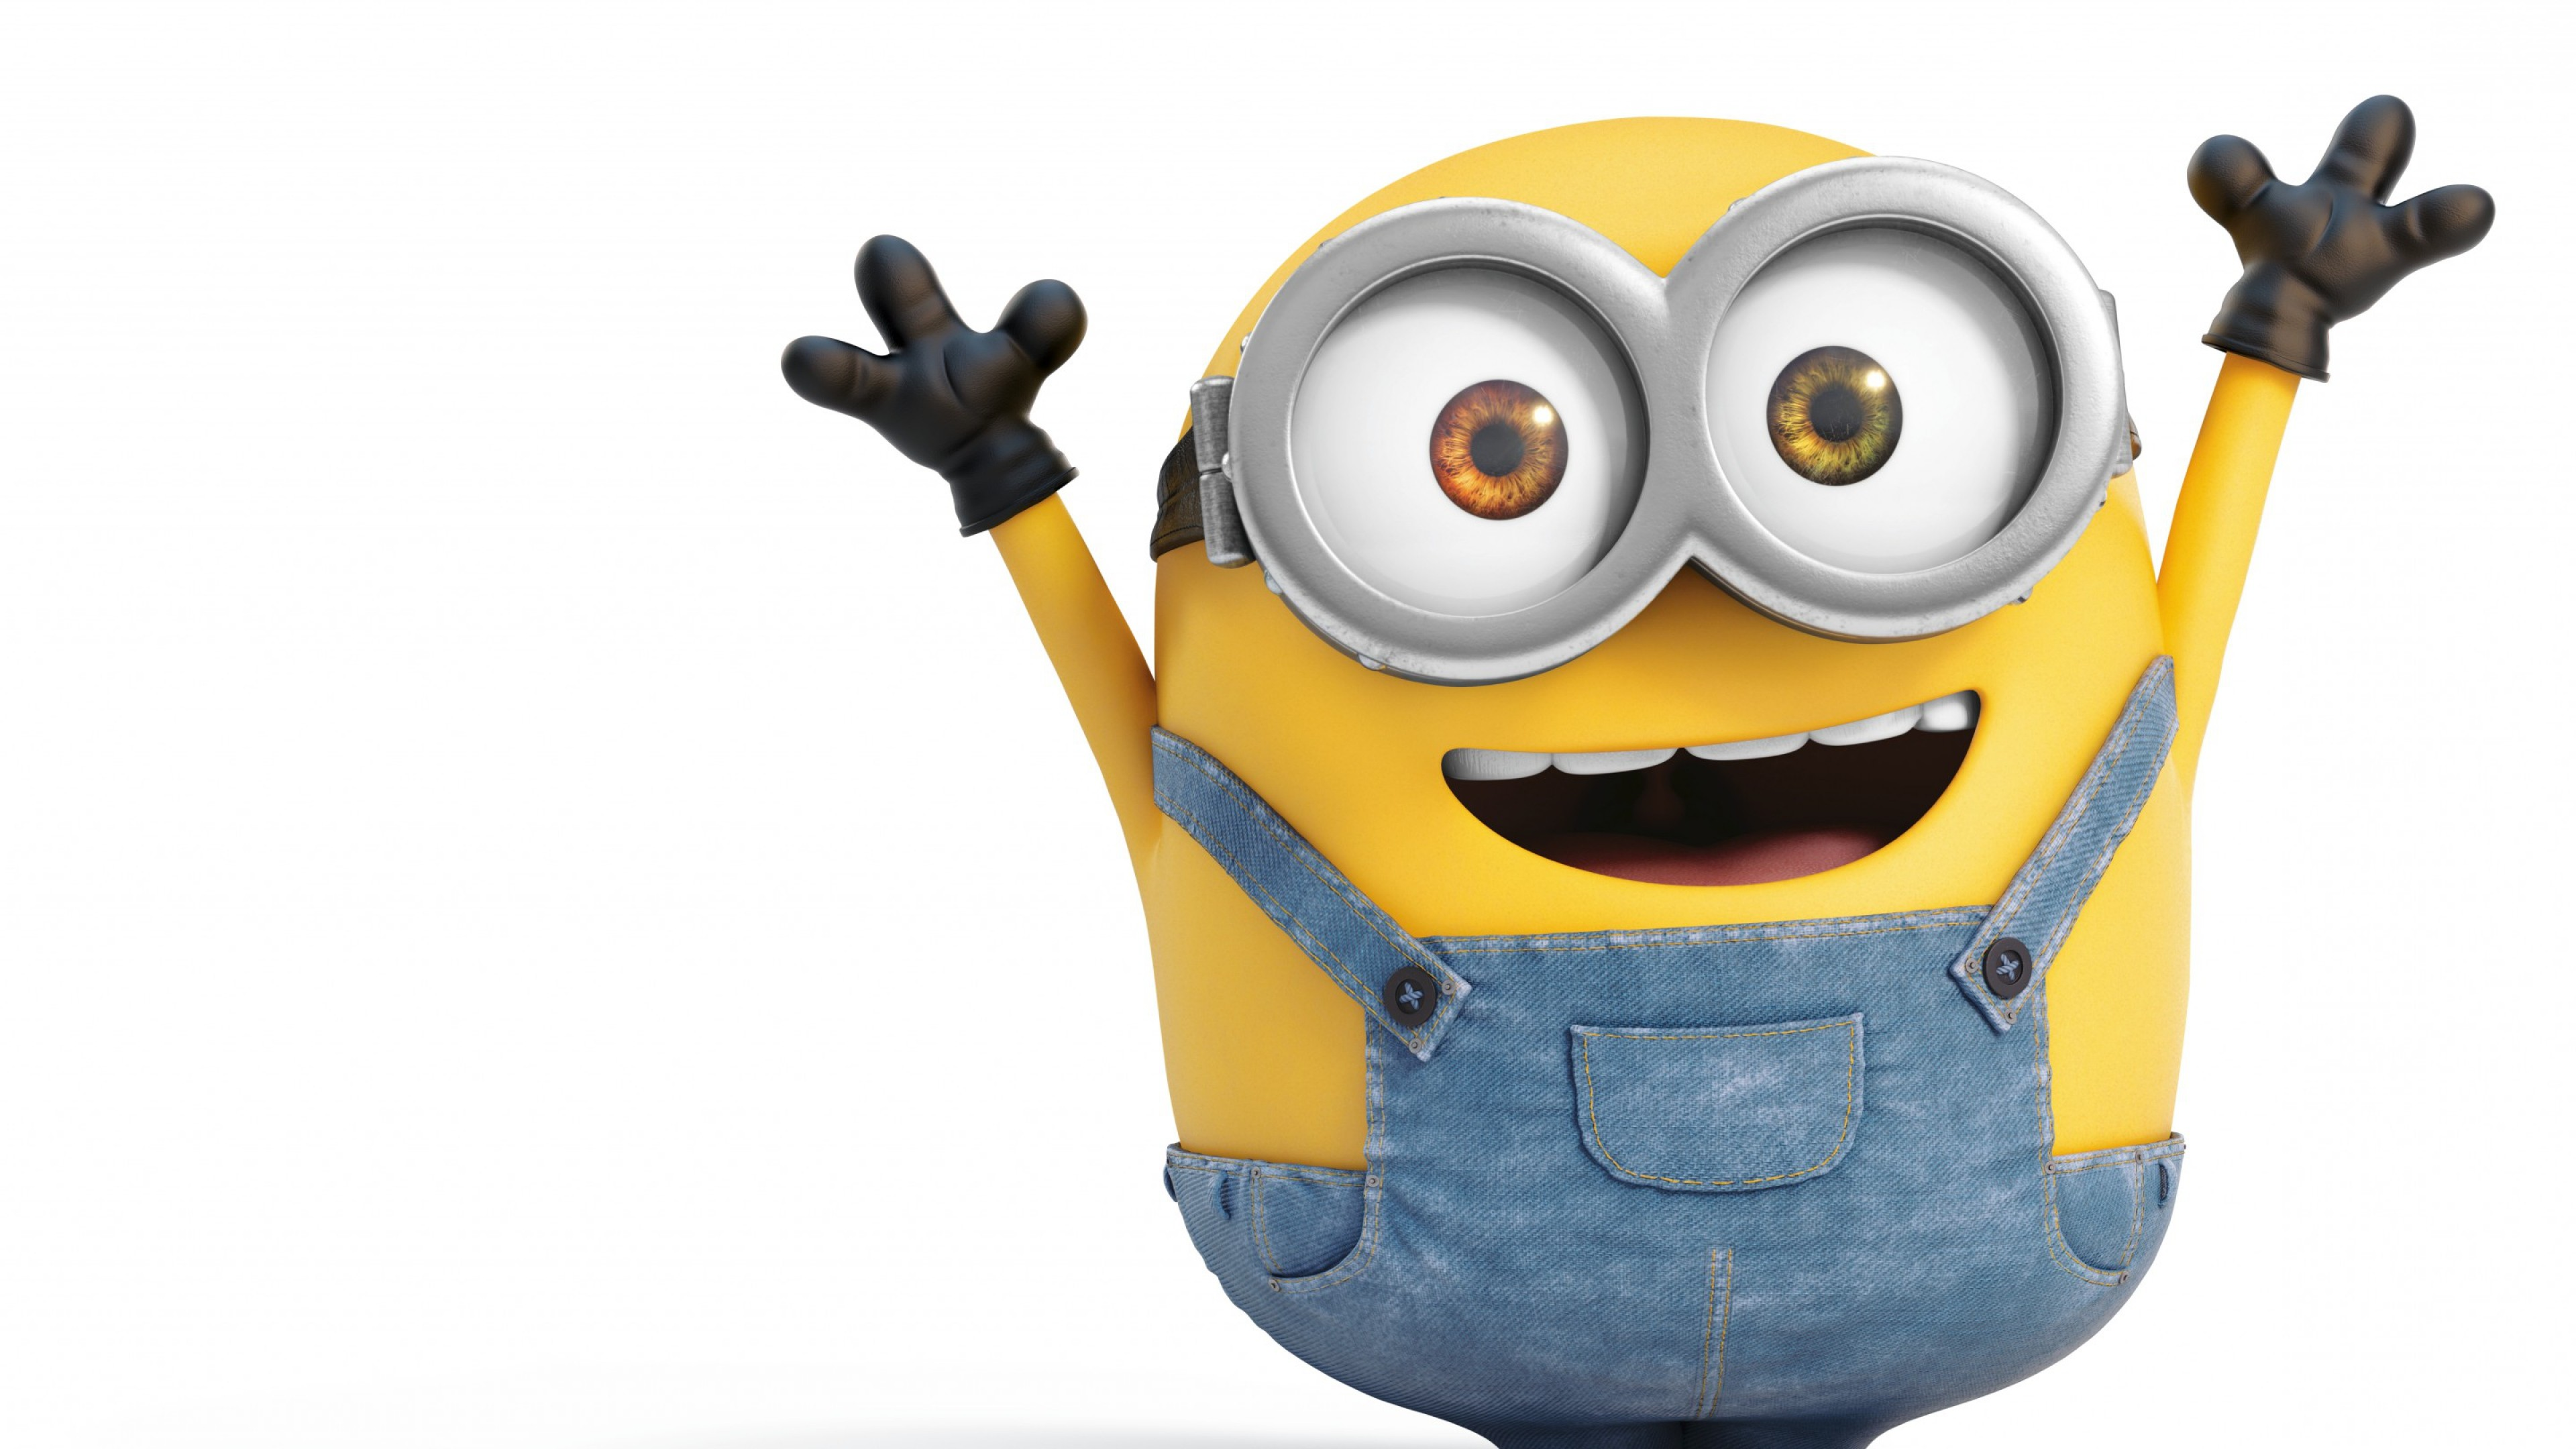 Bob Minions 2048x1152 Resolution